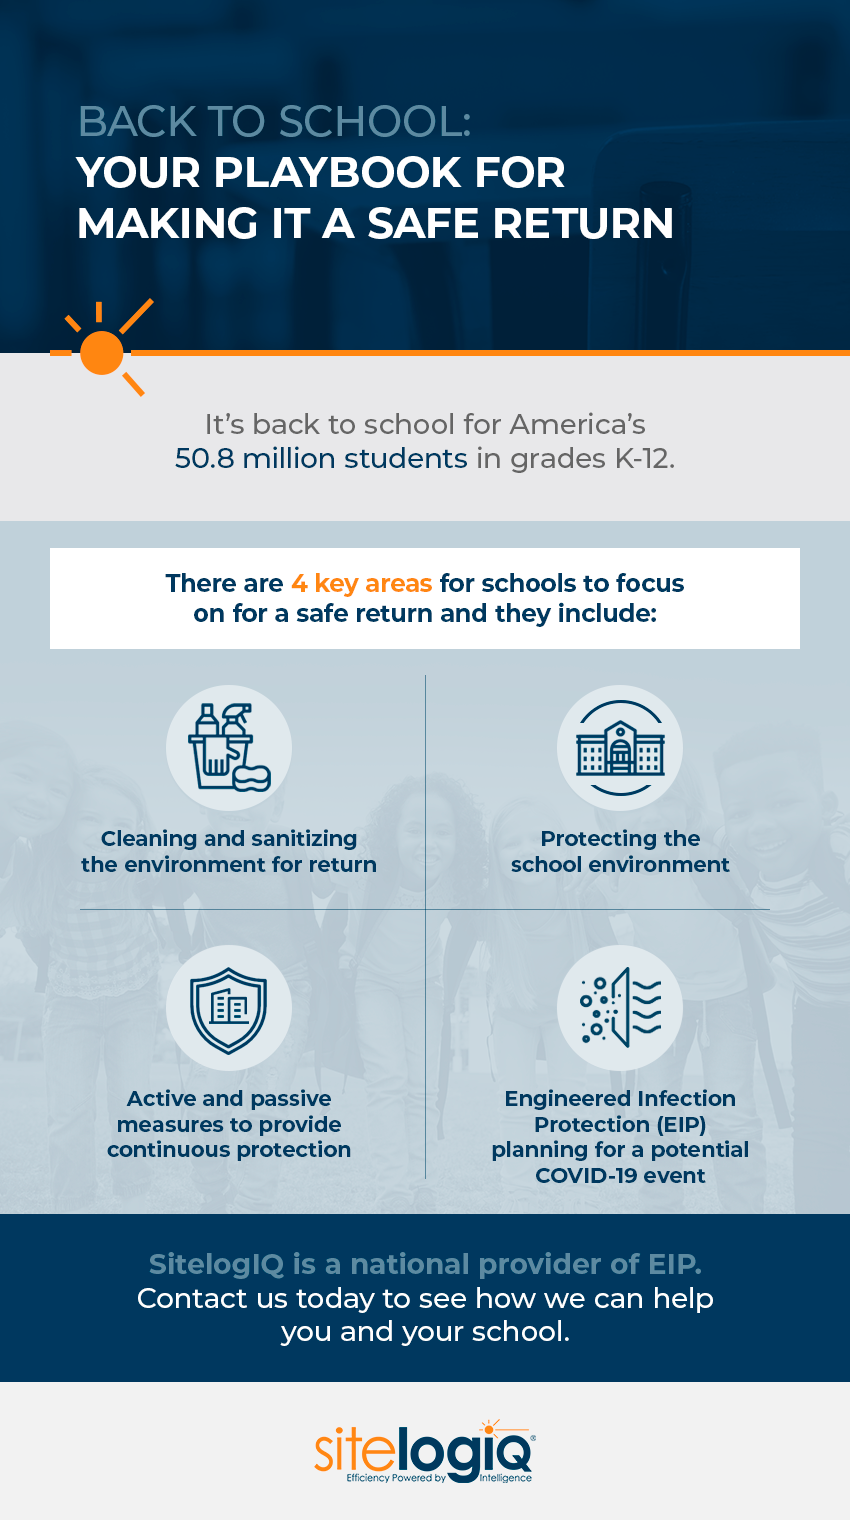 Key Areas of Consideration for Back to School Safety